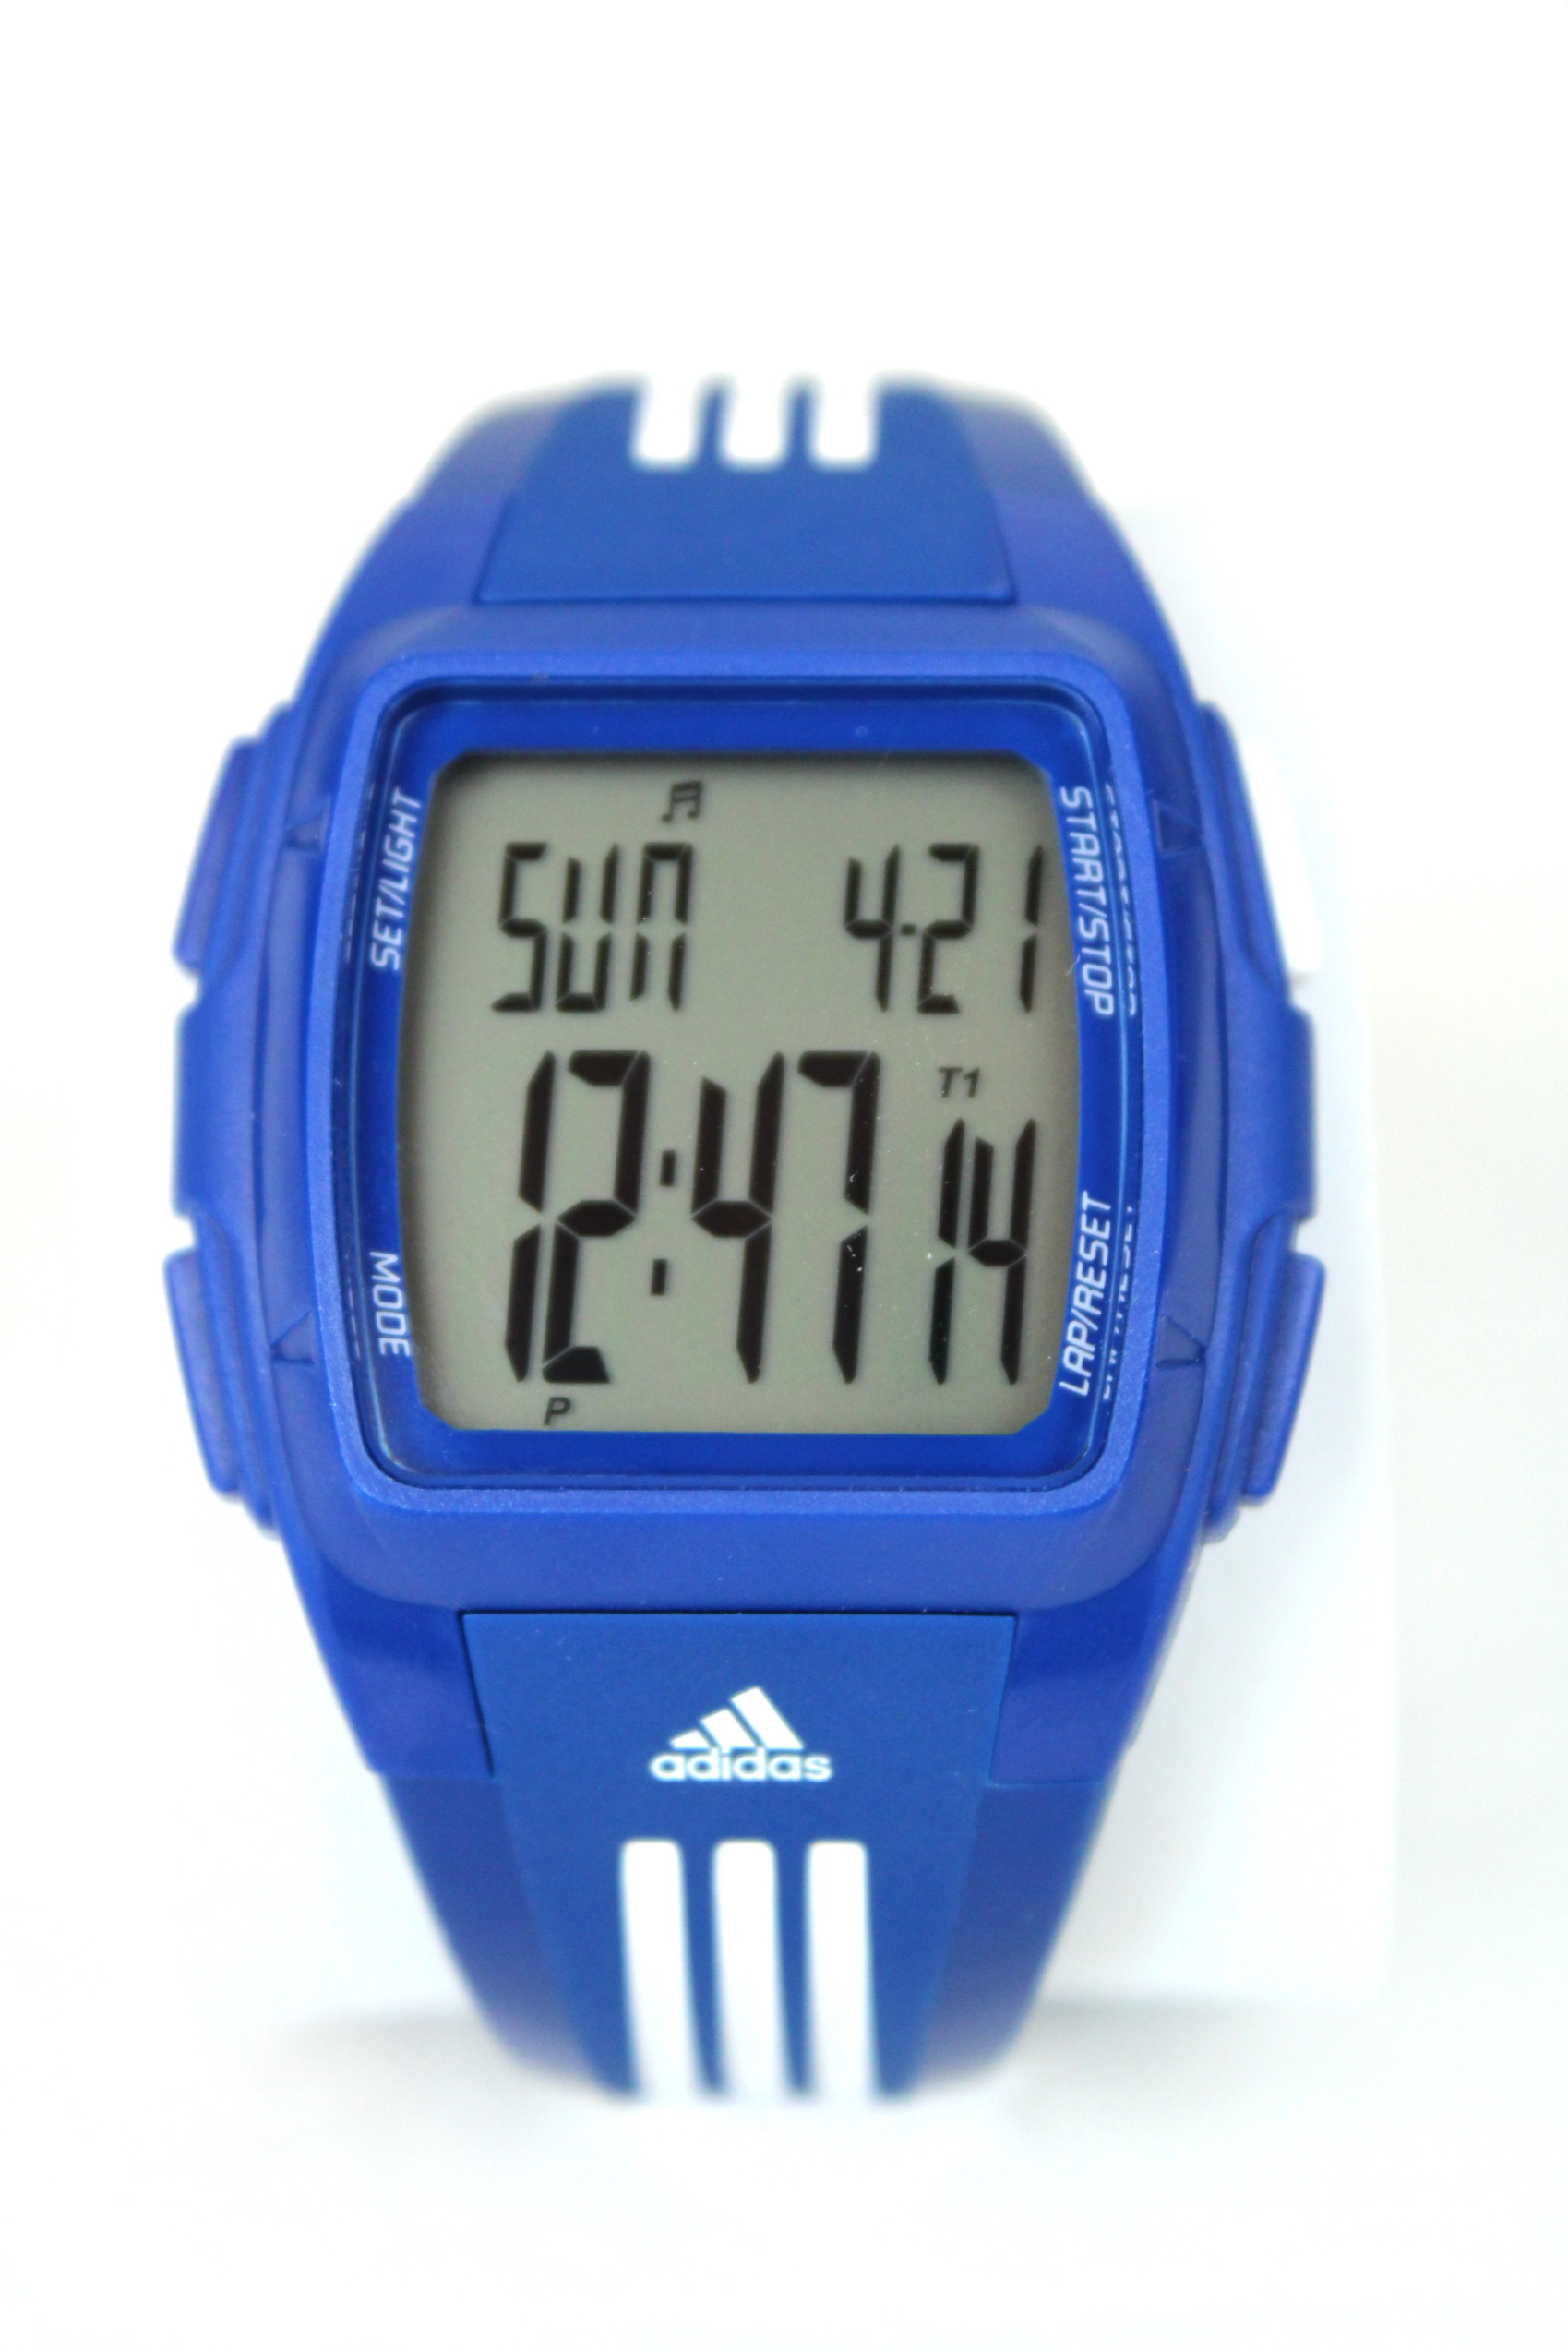 Adidas Duramo Watches